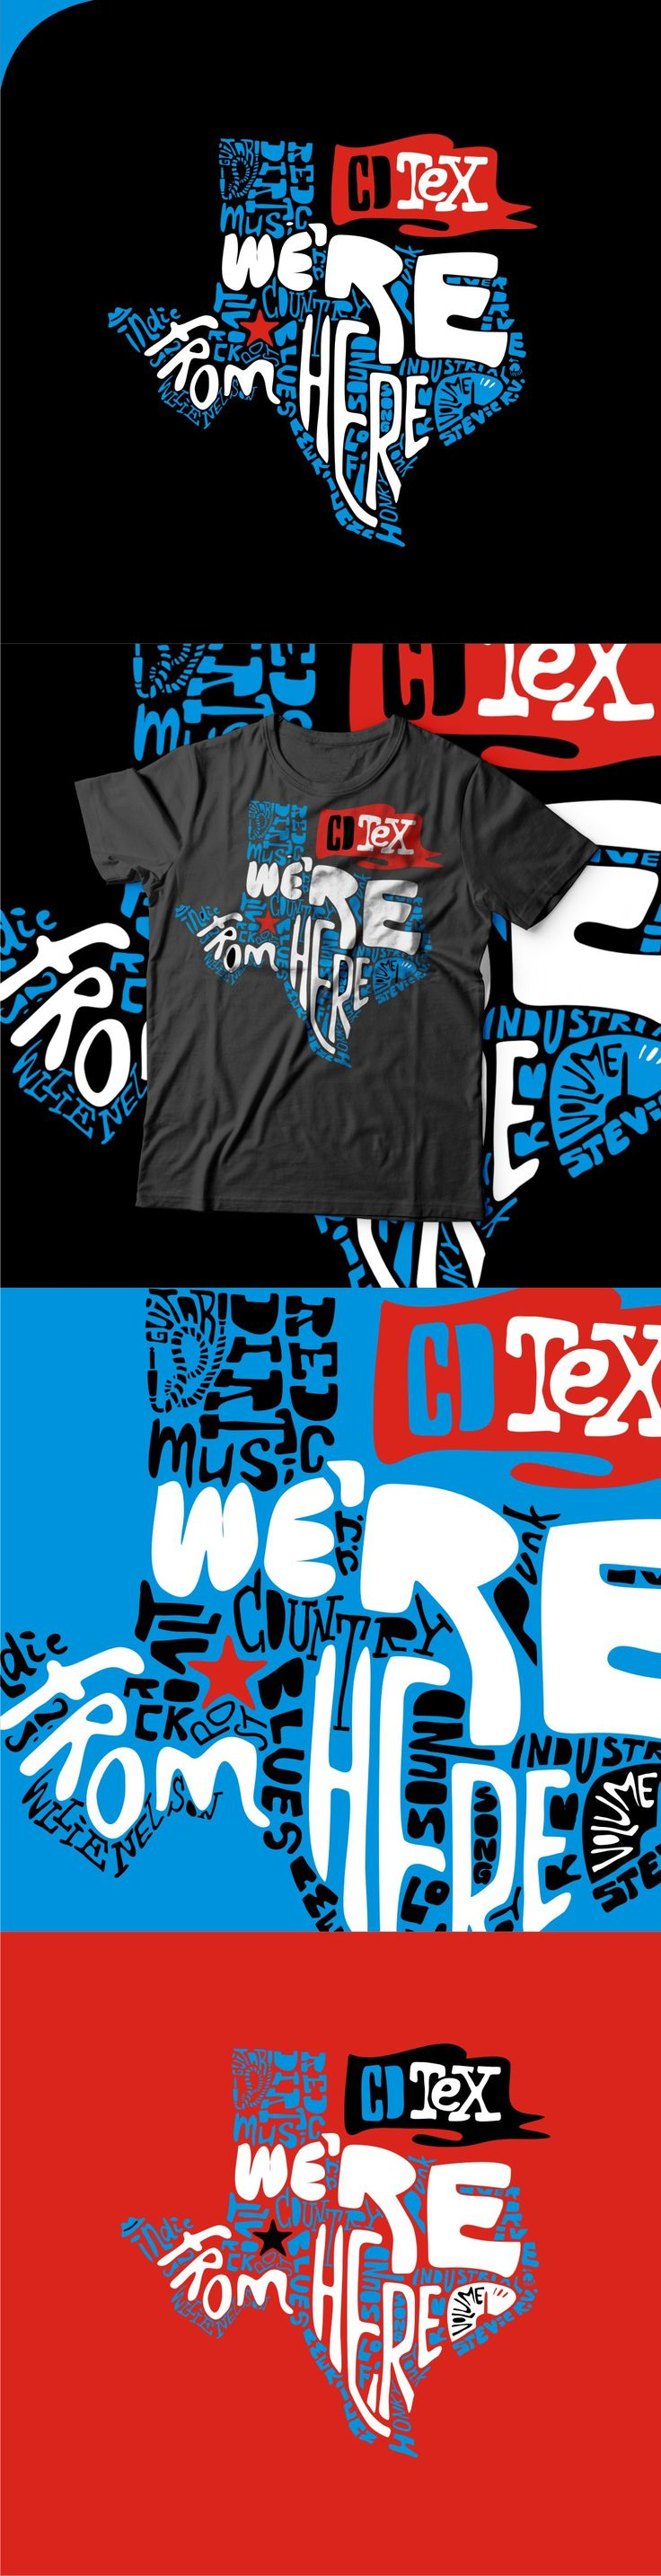 T shirt design inspiration typography - Texas T Shirt Illustration By Romantka Typography Forms The Shape Of This Graphic Tee